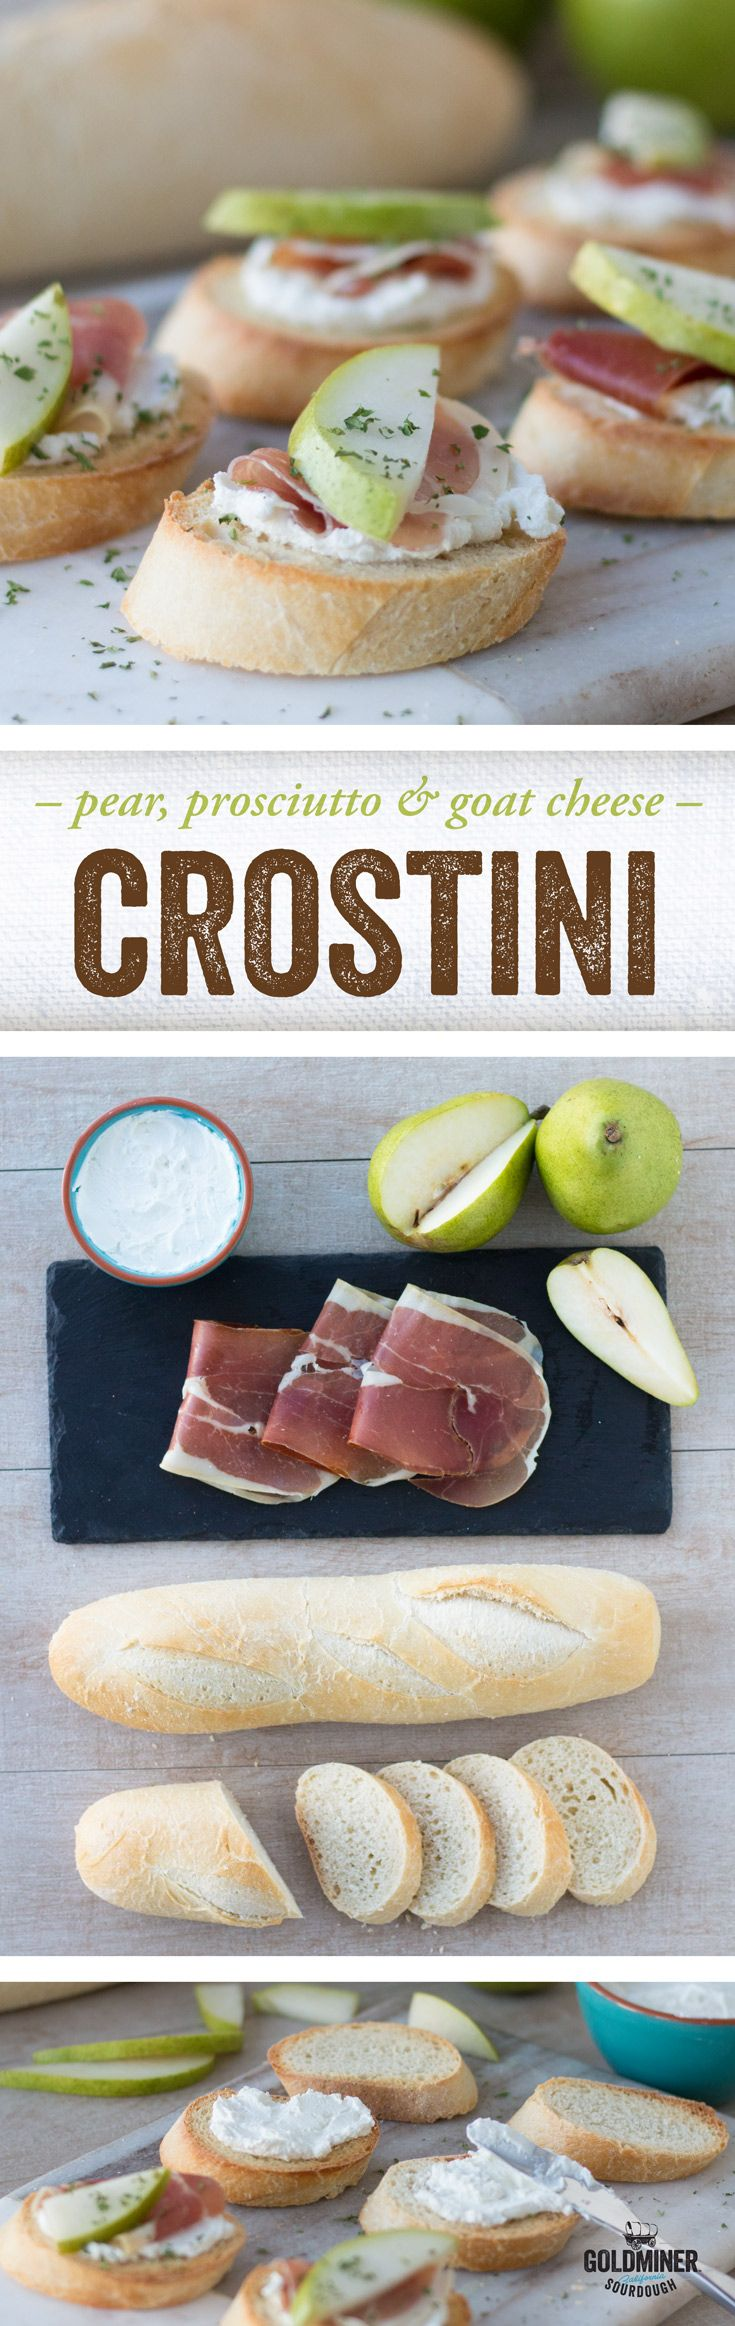 Pear, Prosciutto & Goat Cheese Crostini: Answer the call of happy hour with this appetizing appetizer. Top California Goldminer Sourdough flute slices with Goat cheese, thinly sliced prosciutto, pear and a drizzle of honey.